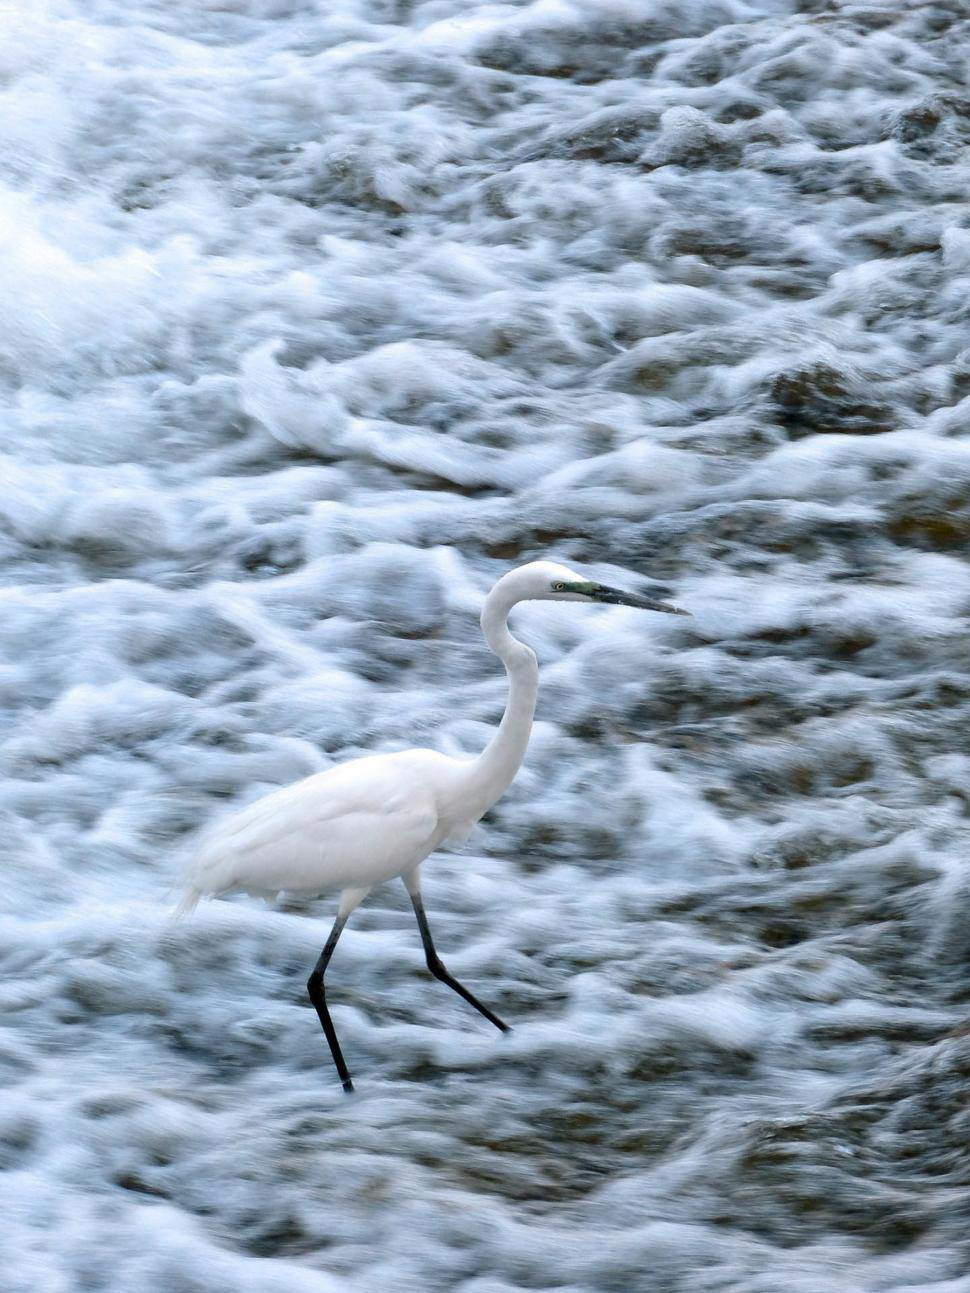 Download Free Stock HD Photo of Snowy Egret in water Online